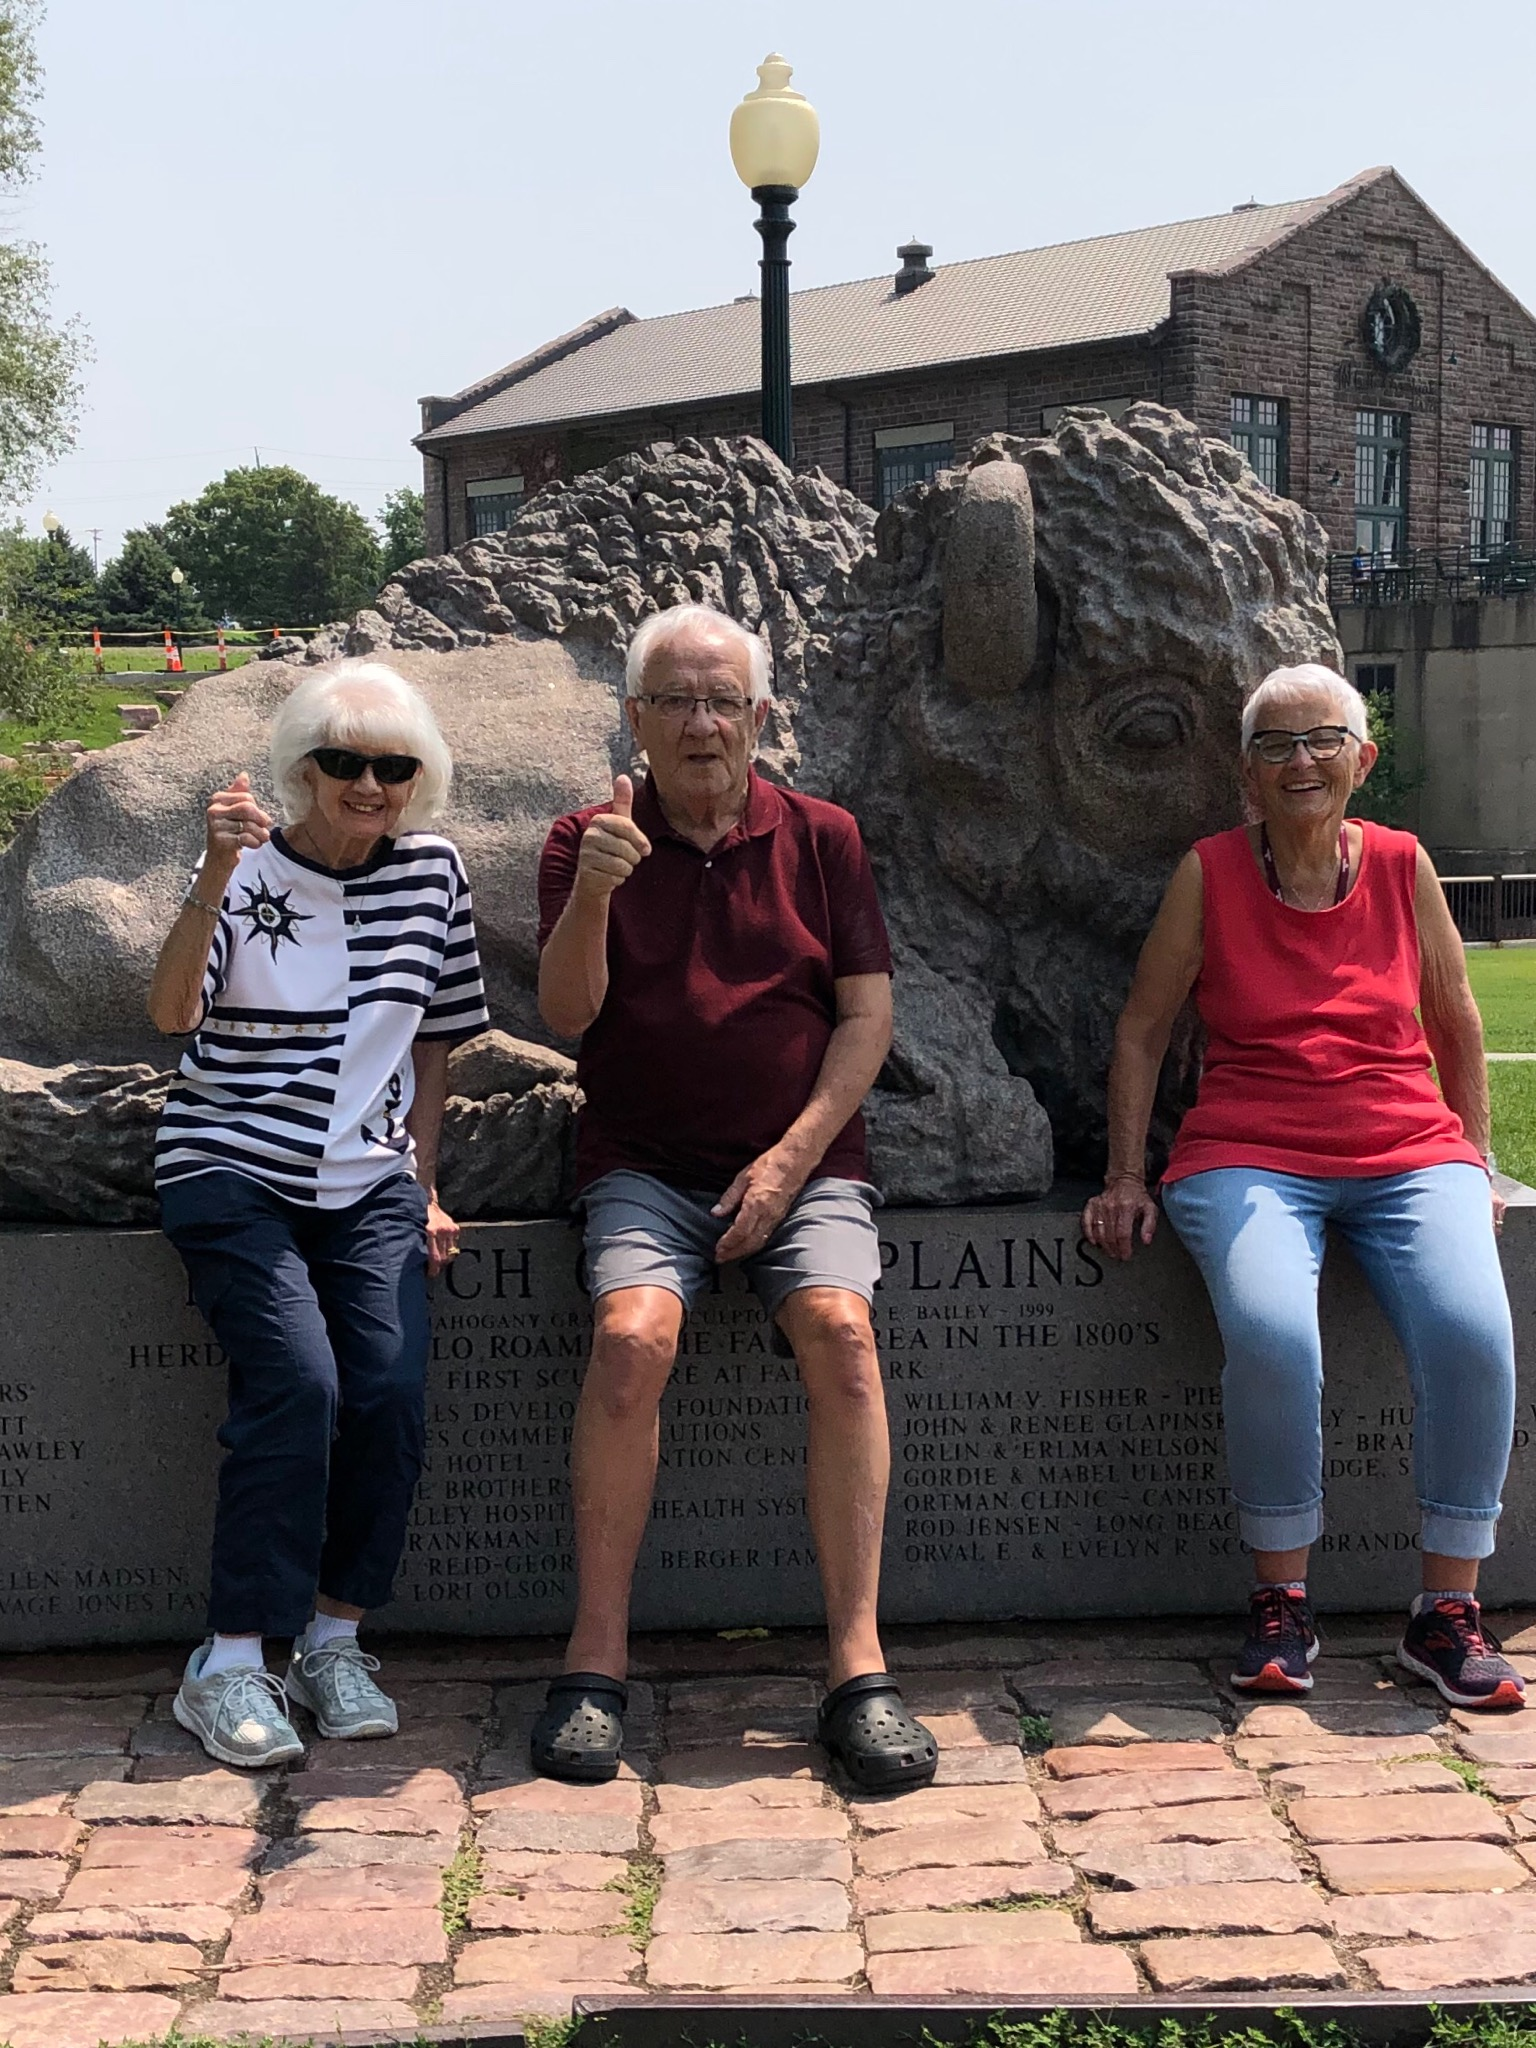 Residents enjoying the Falls Park in Sioux Falls!